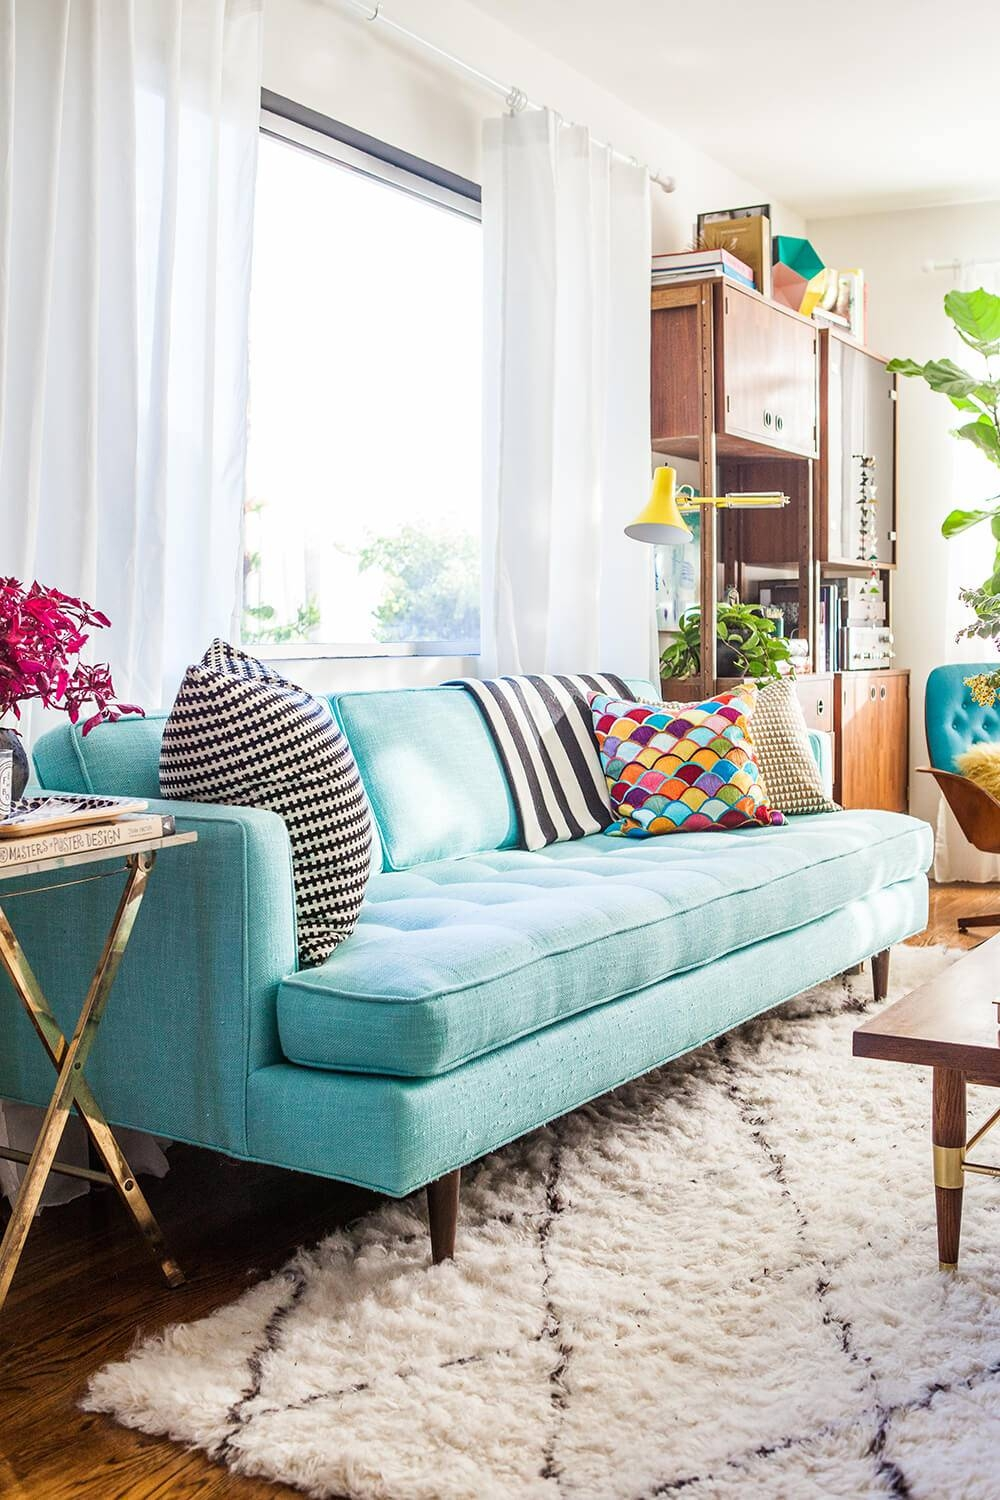 Teal Tufted Sofa 30 The Best Affordable Tufted Sofa